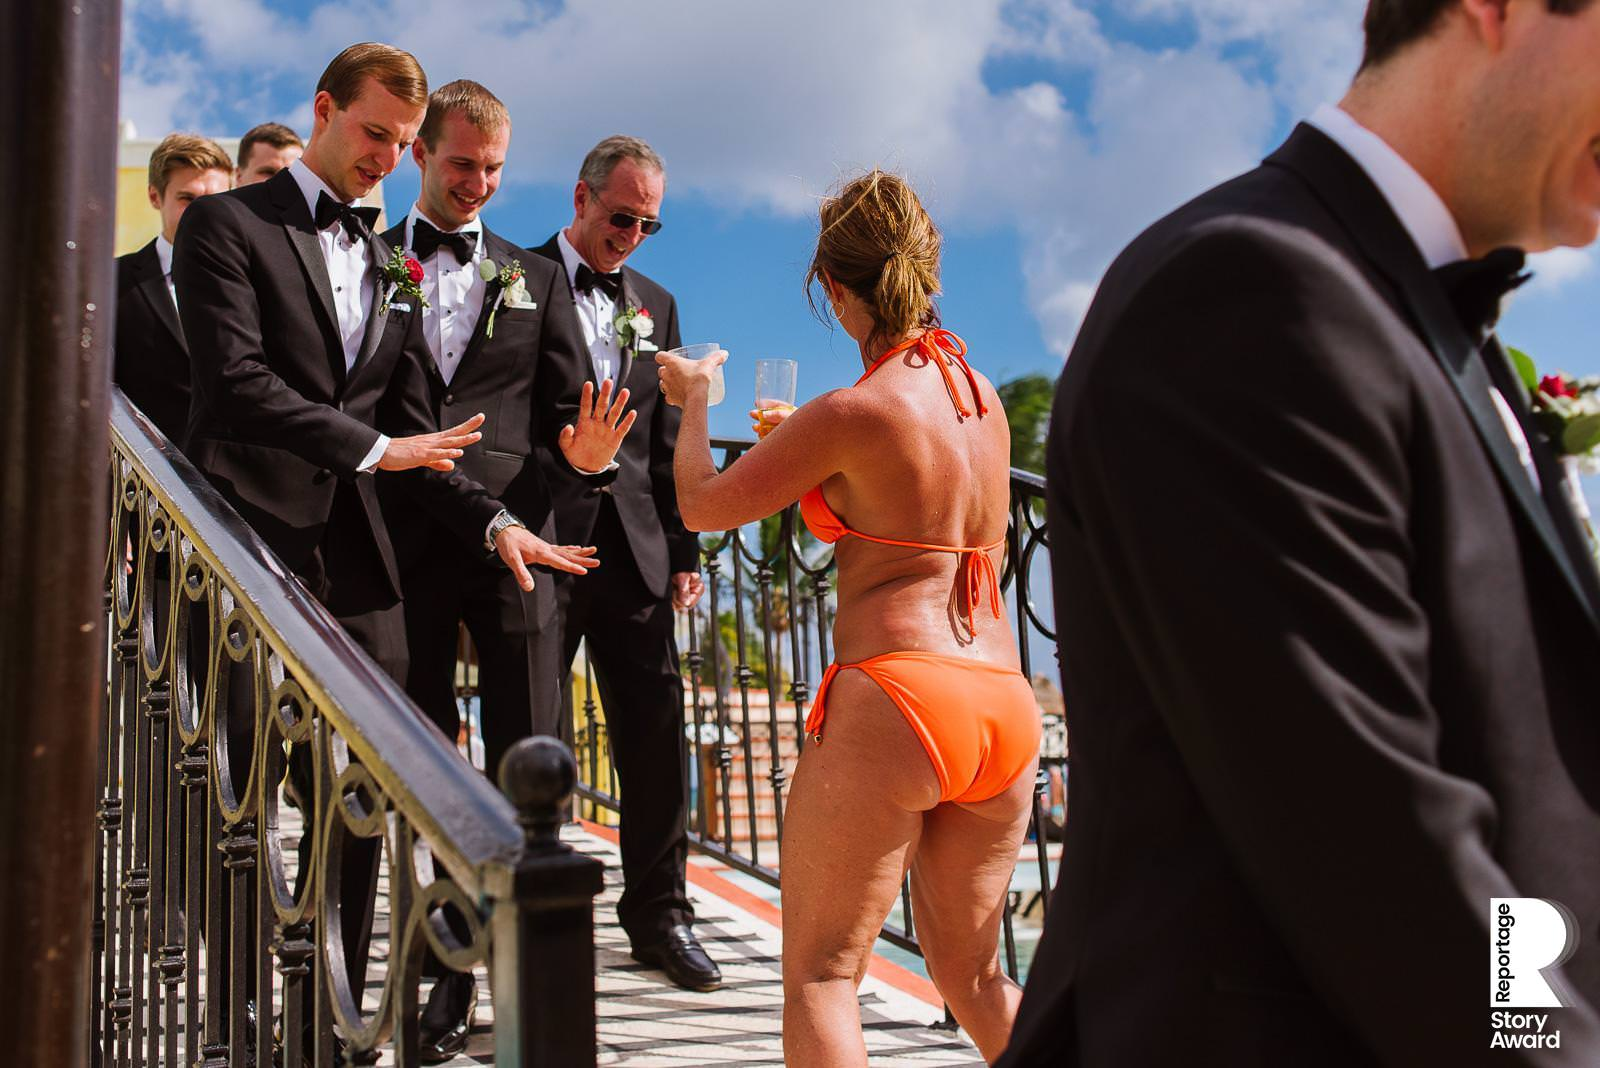 Tourist wearing an orange bikini offers a drink to a Groom wearing a tuxedo and he rejects it